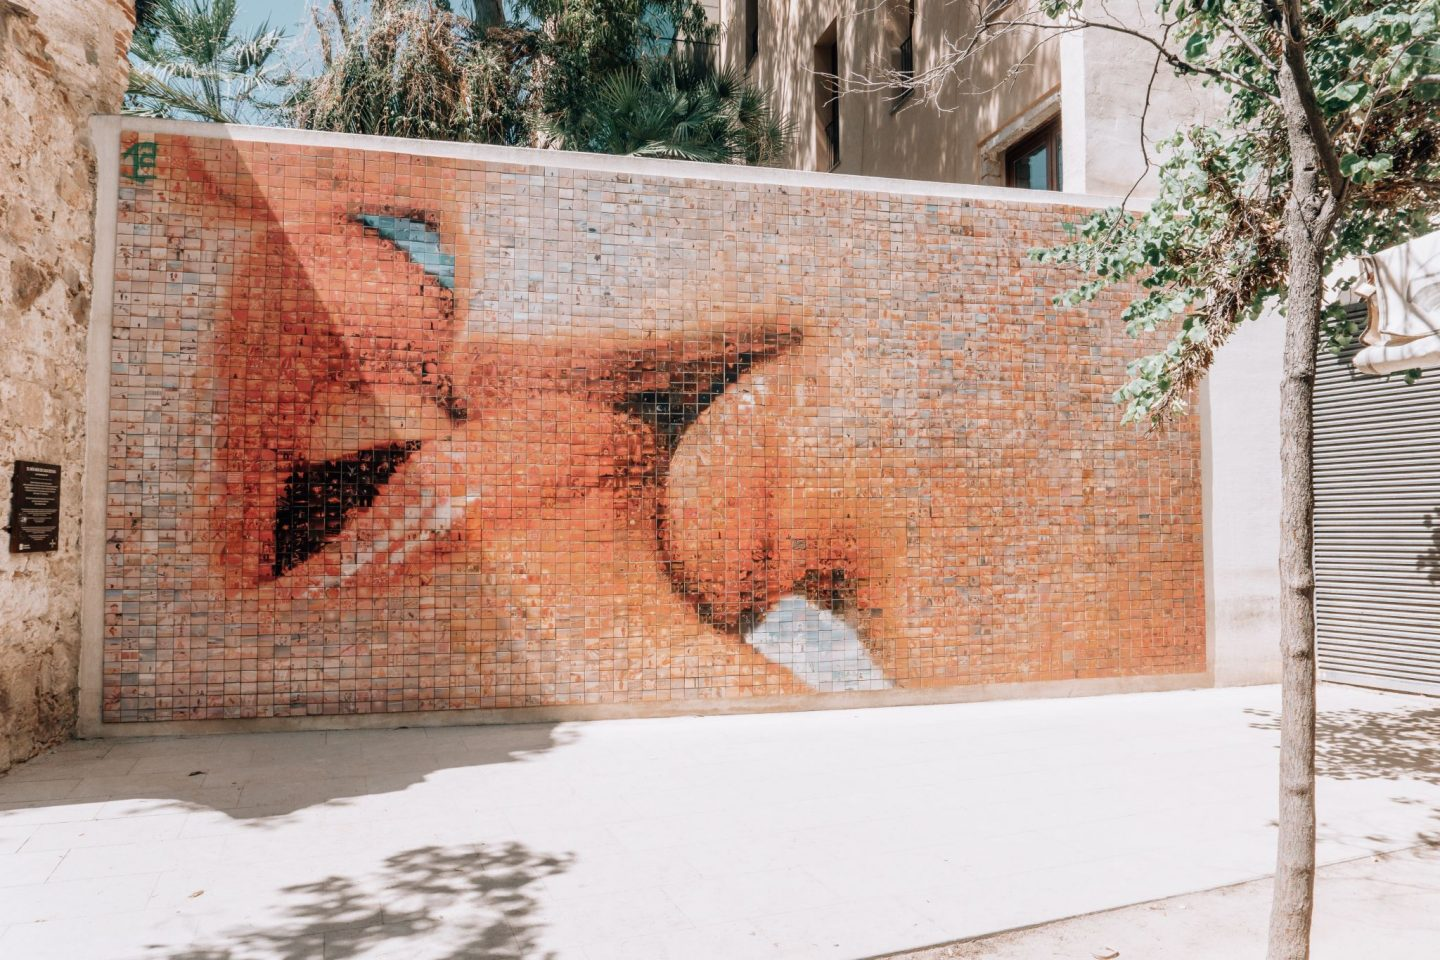 kiss of freedom, guide to barcelona, city trip, travel, wall, photos